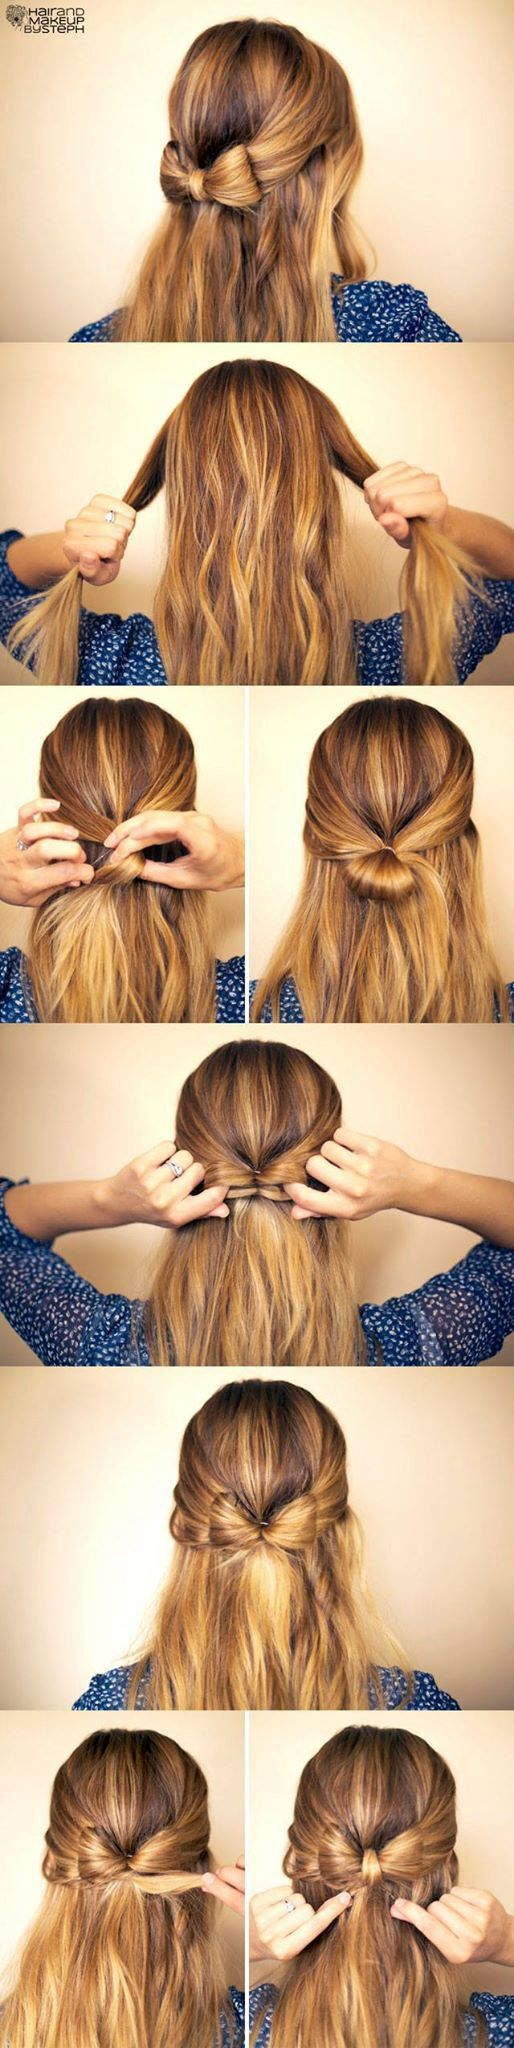 best hairstyles images on pinterest hairstyle ideas girls